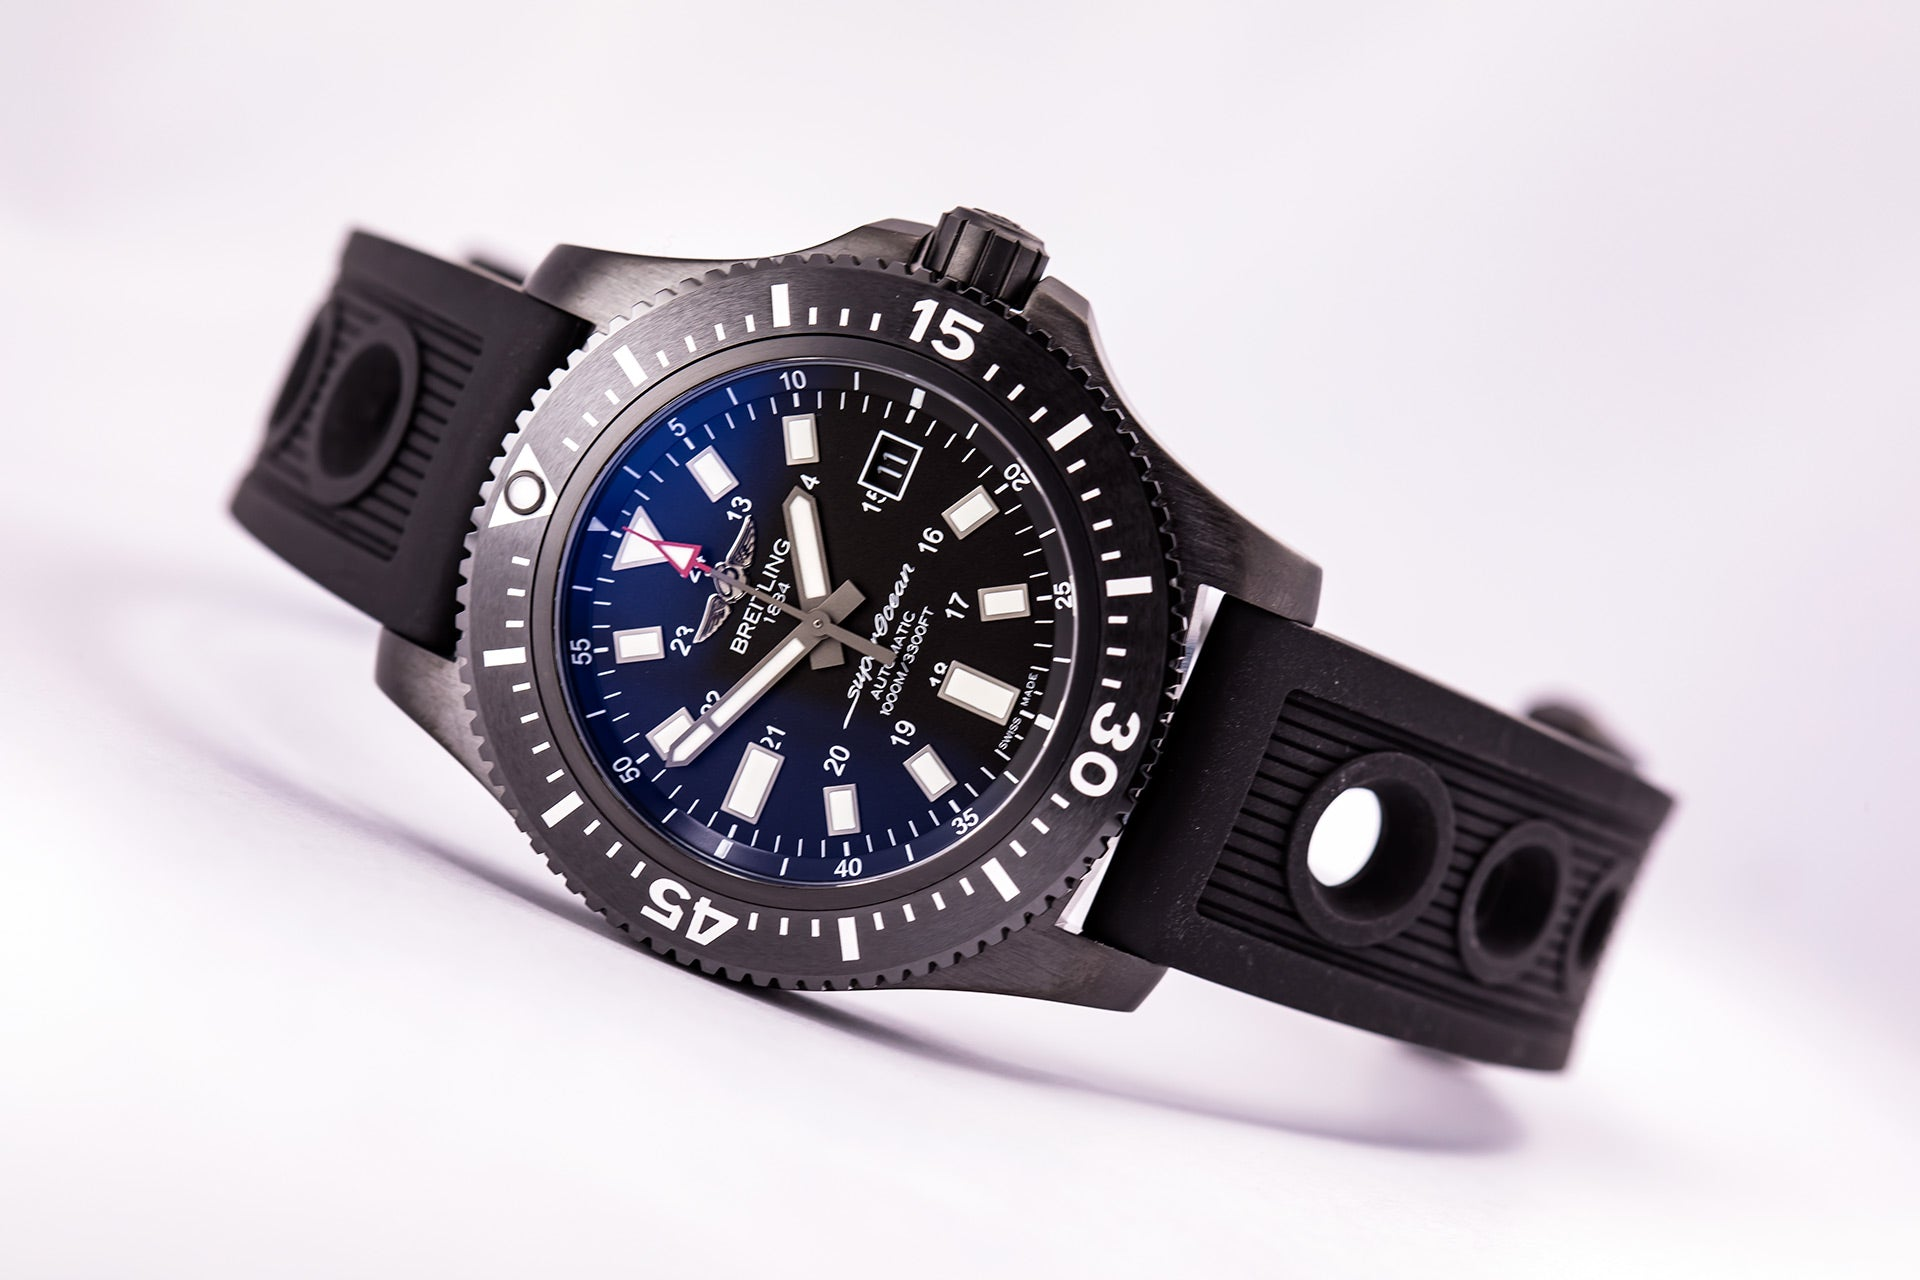 Breitling Superocean 44 Special Black Steel, Ocean Racer with Folding Buckle